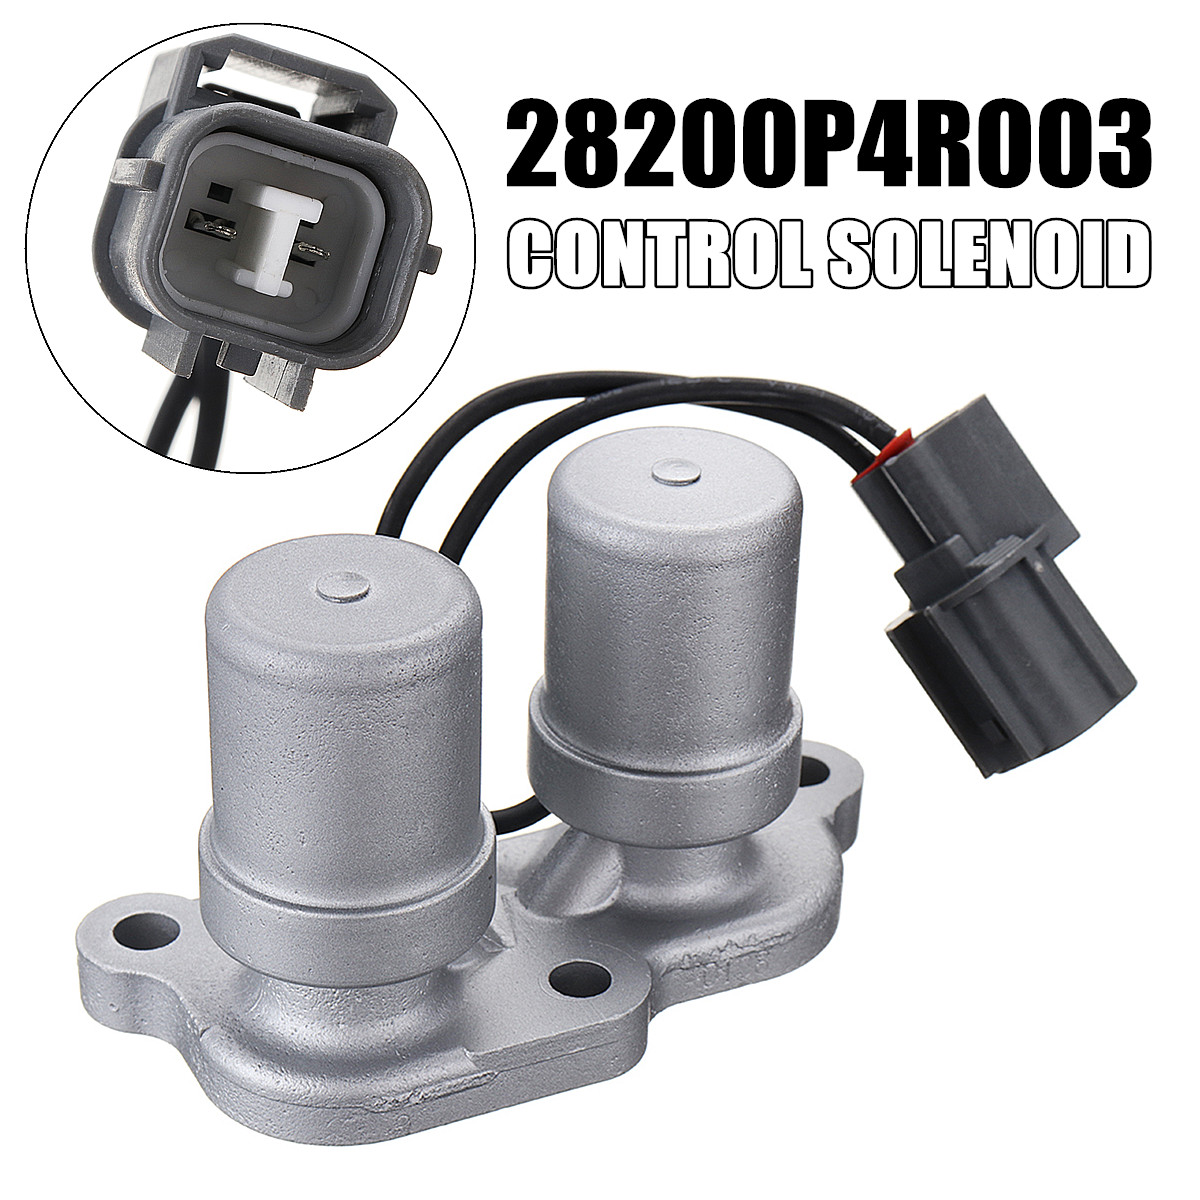 28200-P4R-003 Automatic Transmission Shift Control Solenoid 89x37x54mm For Honda-Civic 1996-2000 Auto Replacement Parts